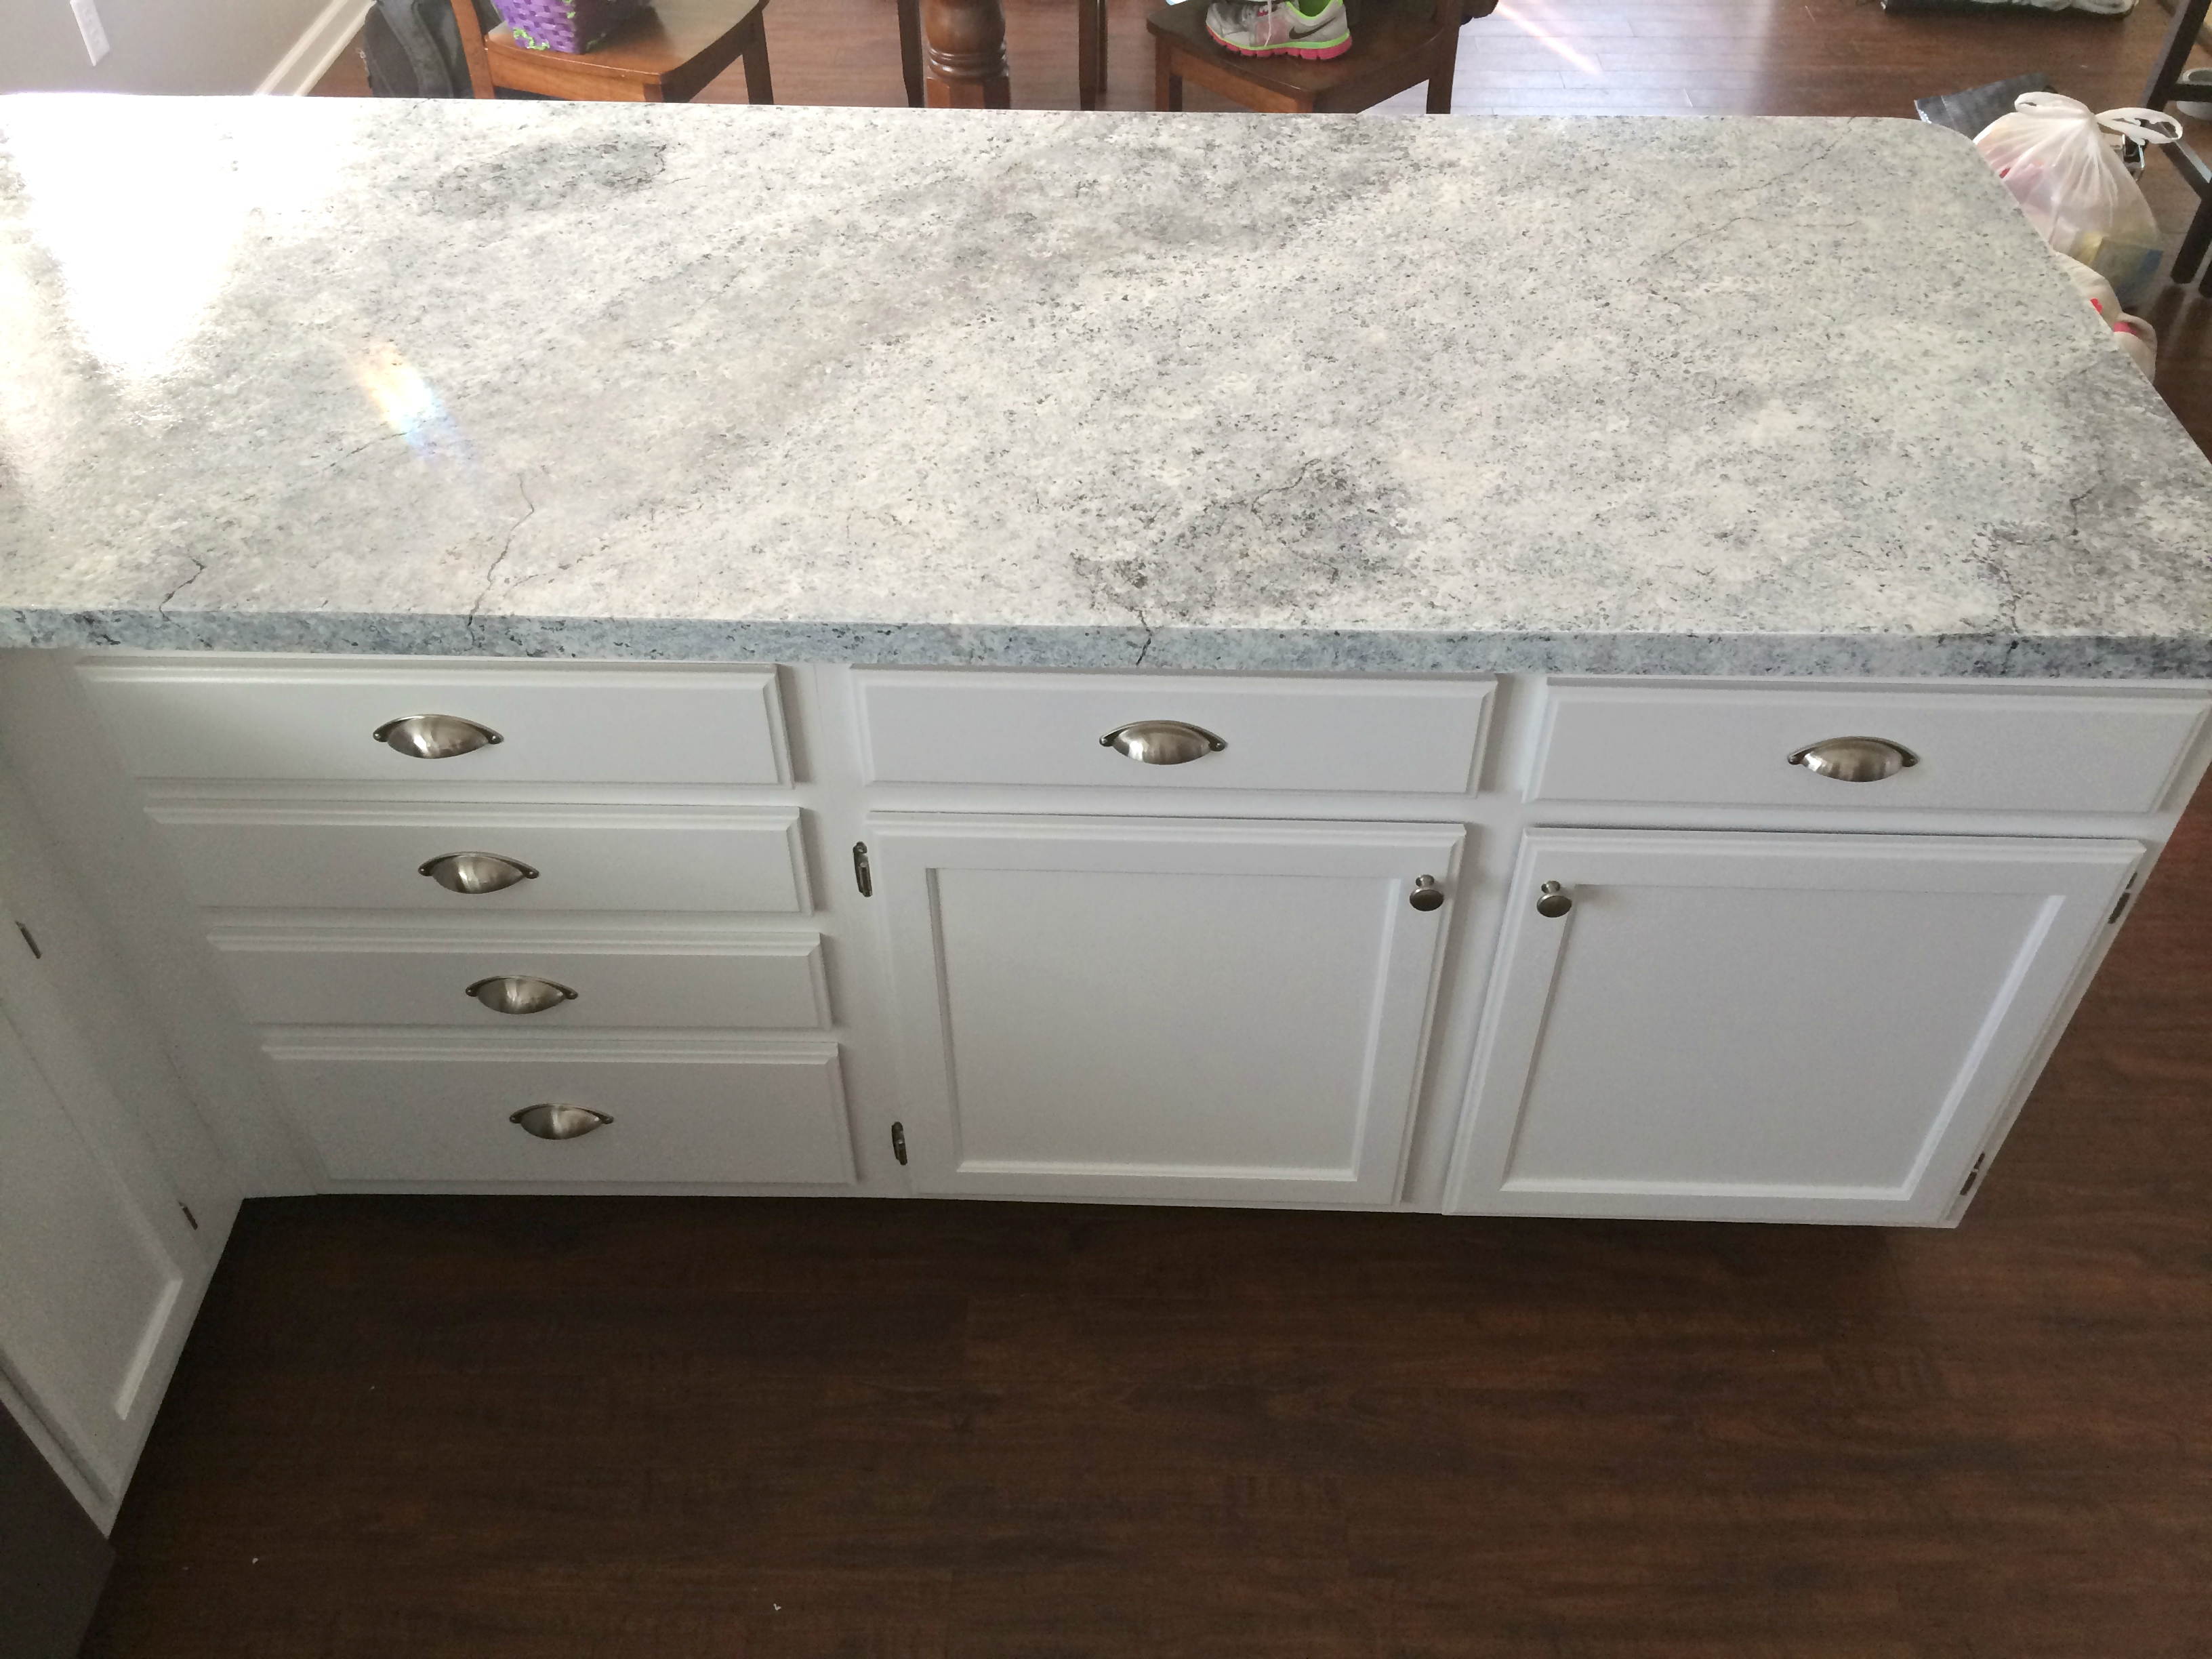 Granite Paint Kit For Countertops Countertop Redo With Giani Granite Countertop Paint Life